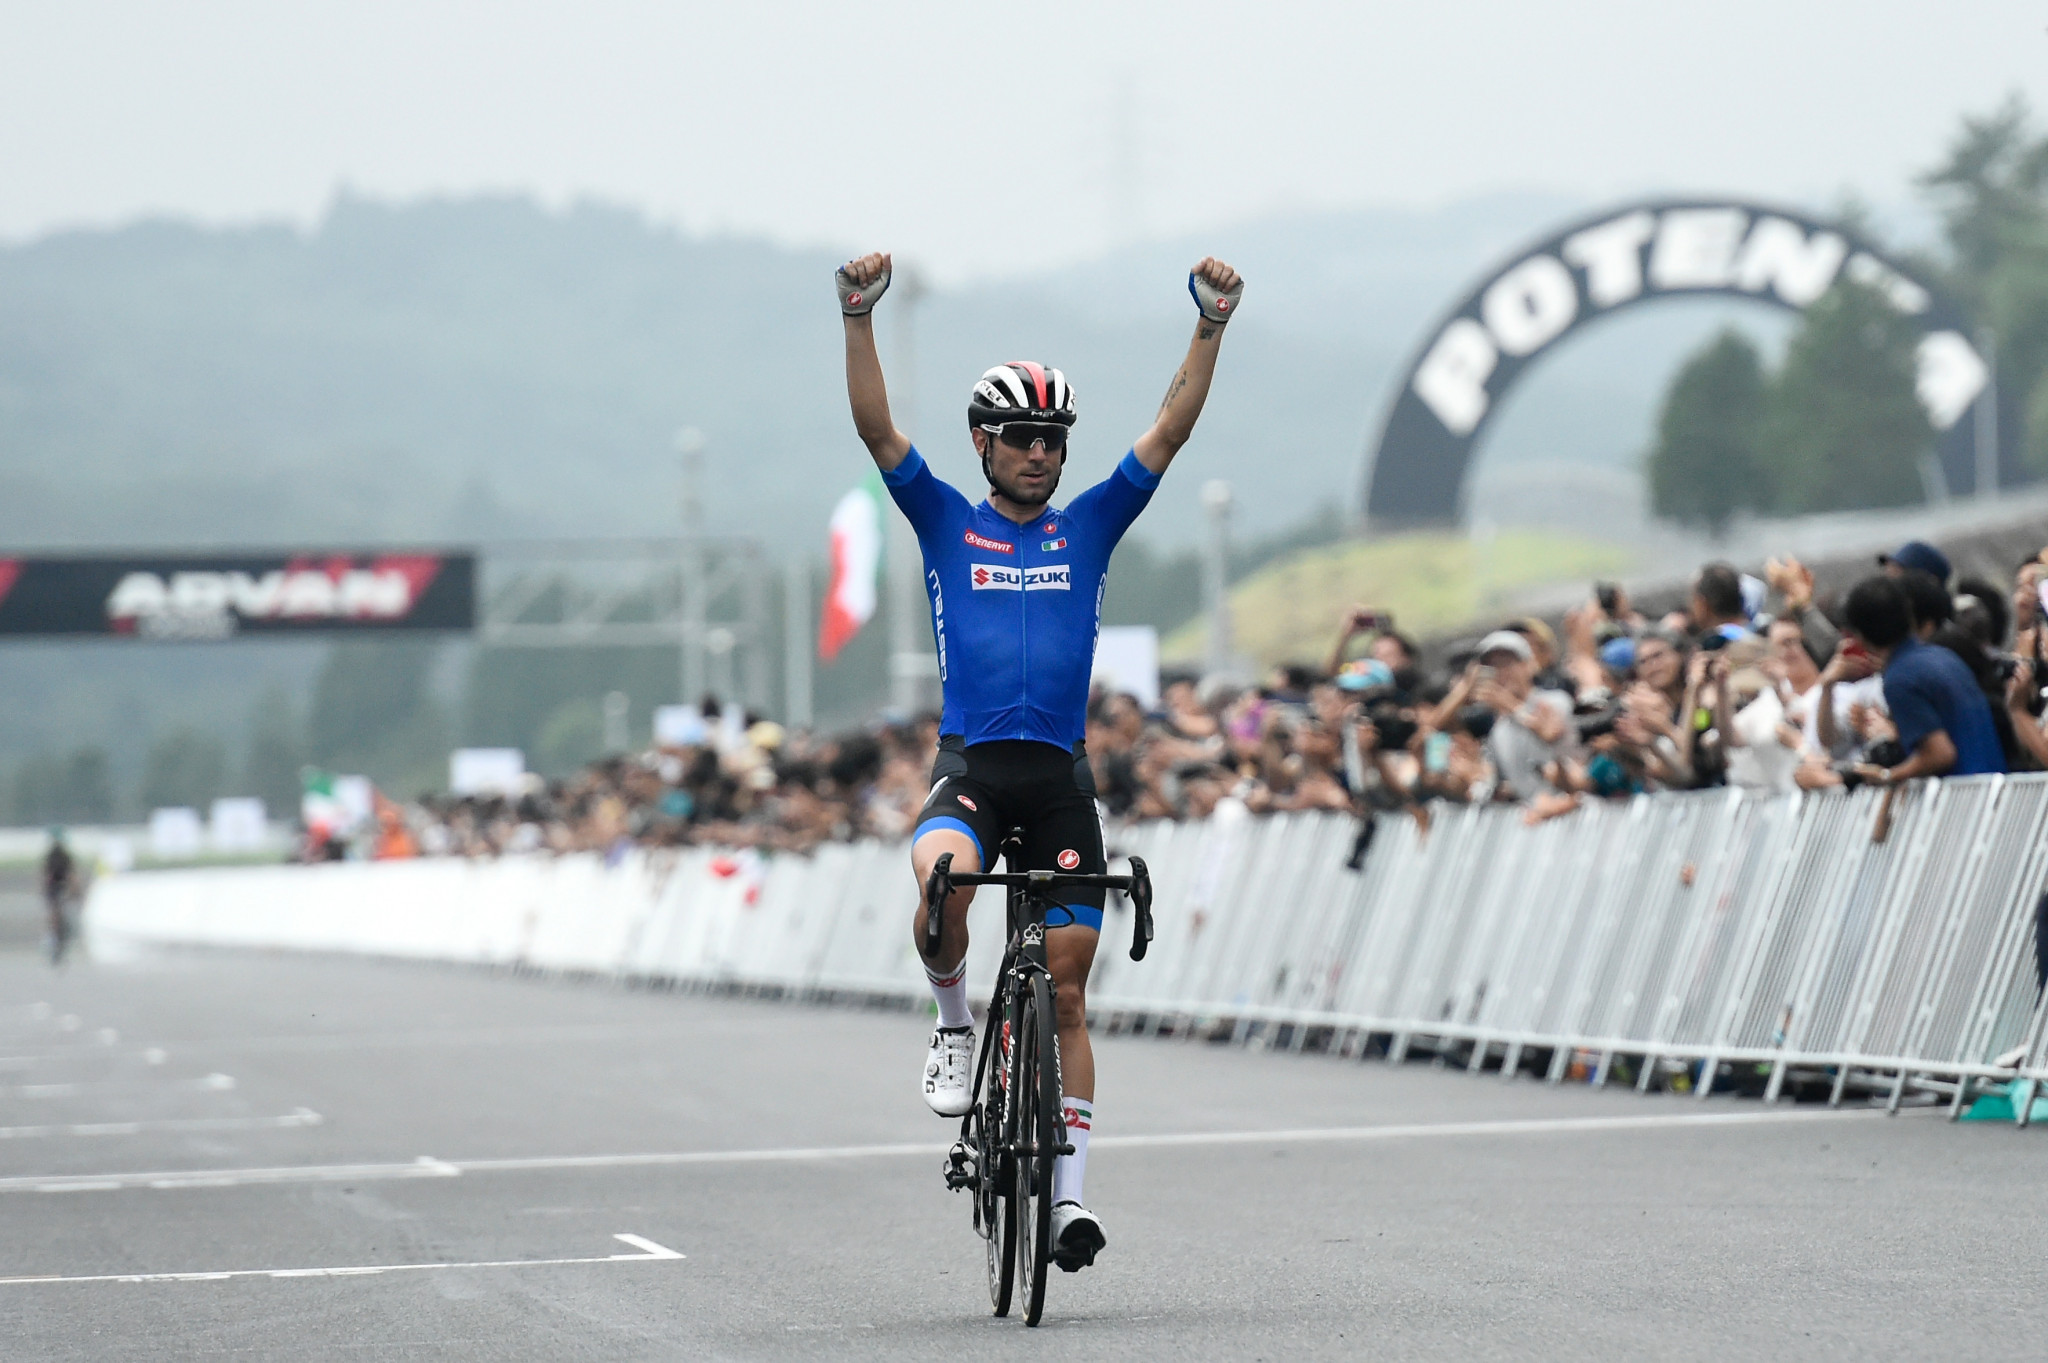 Italy's Ulissi wins Tokyo 2020 road race test event